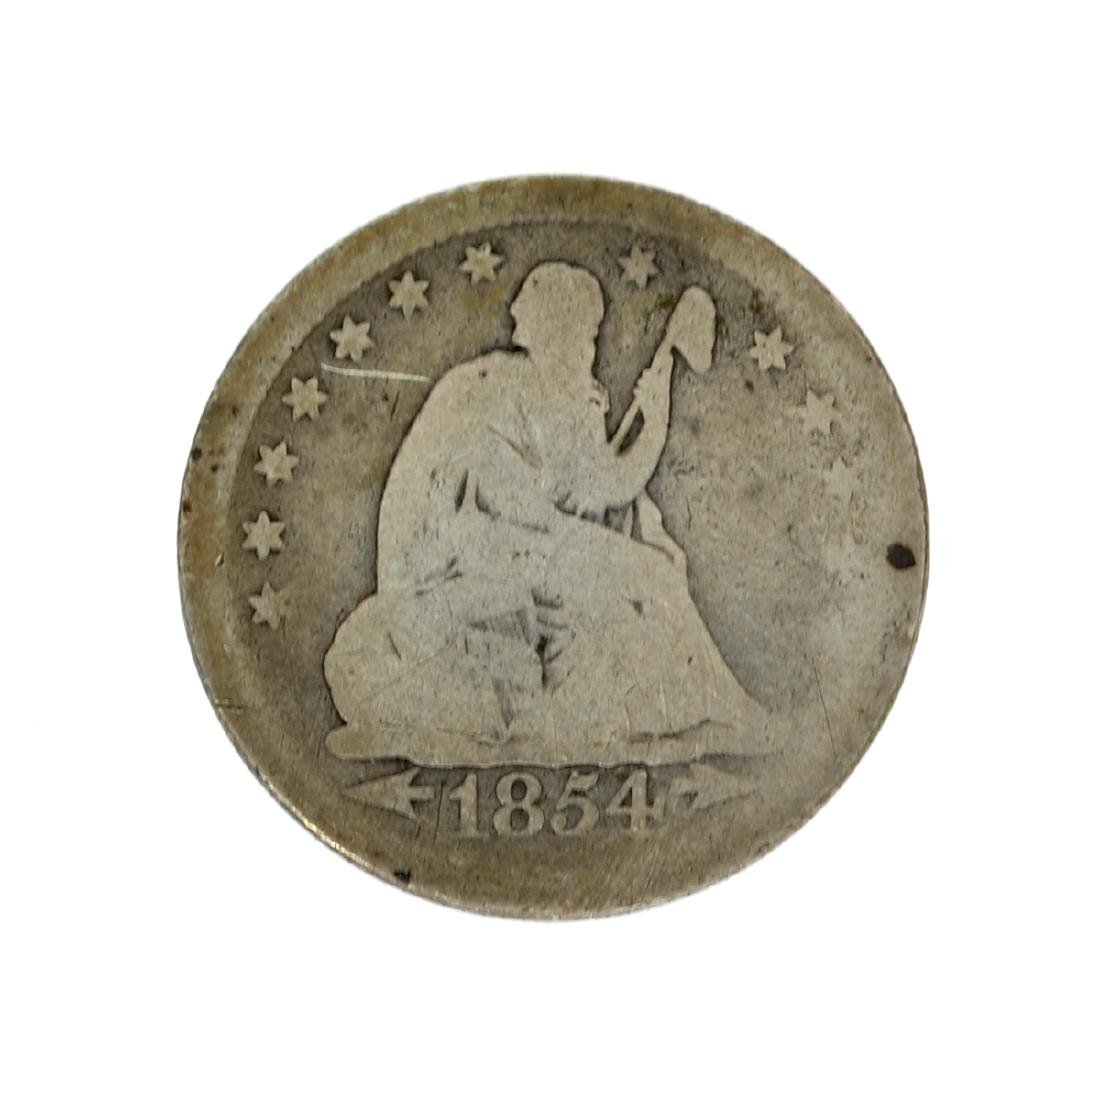 1854 Liberty Seated Arrows At Date Quarter Dollar Coin